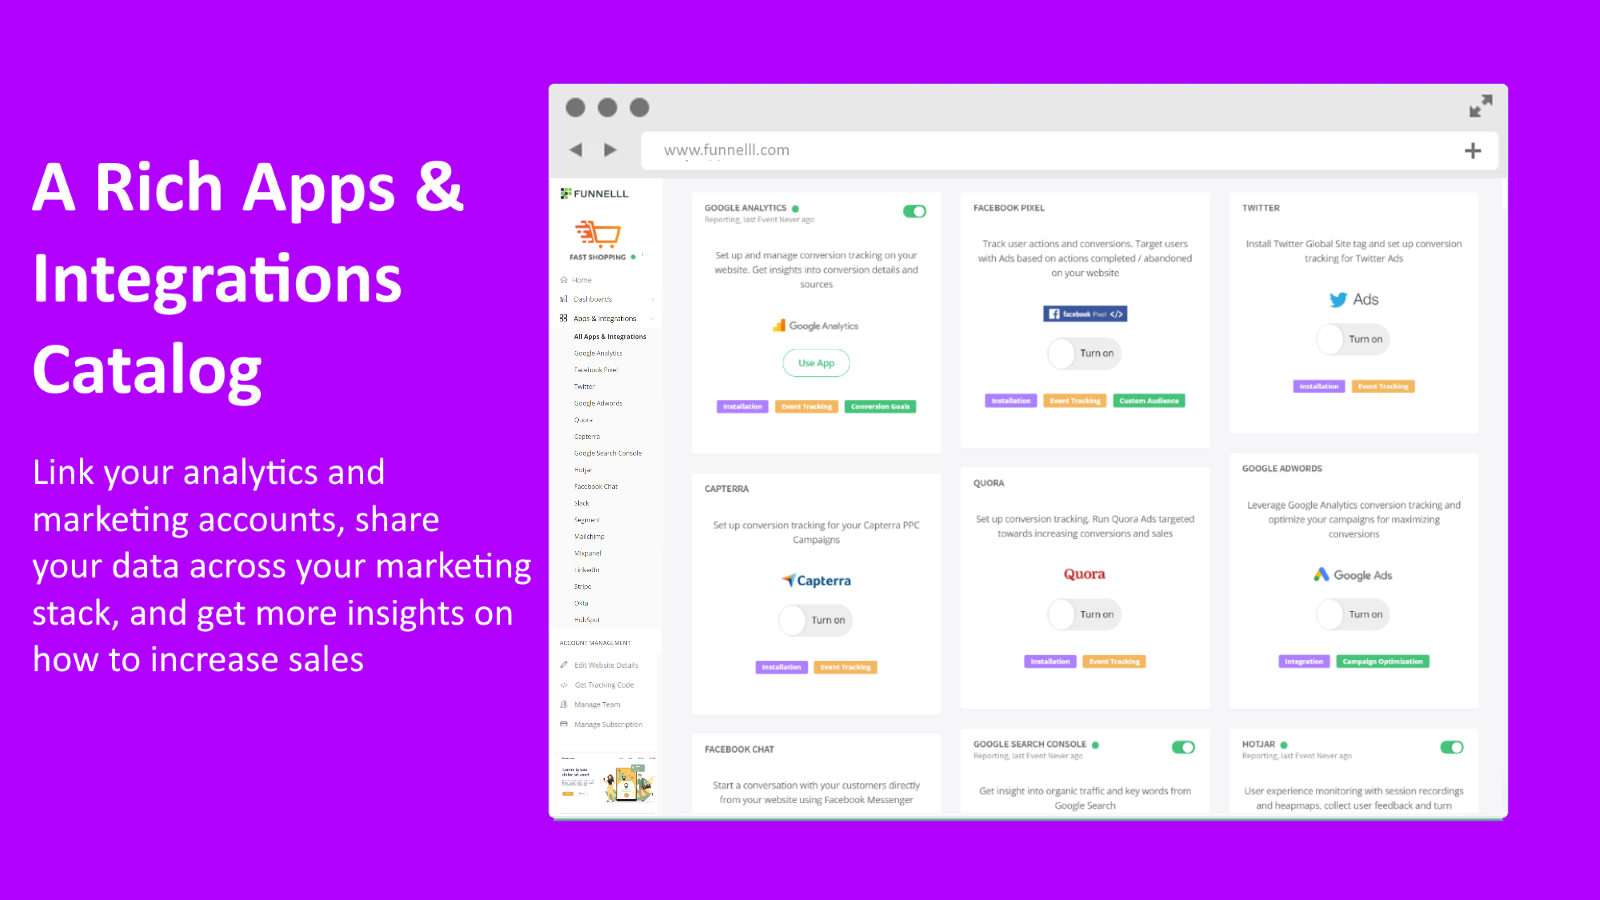 Google Analytics, Ads, Facebook, and more - Funnelll on Shopify